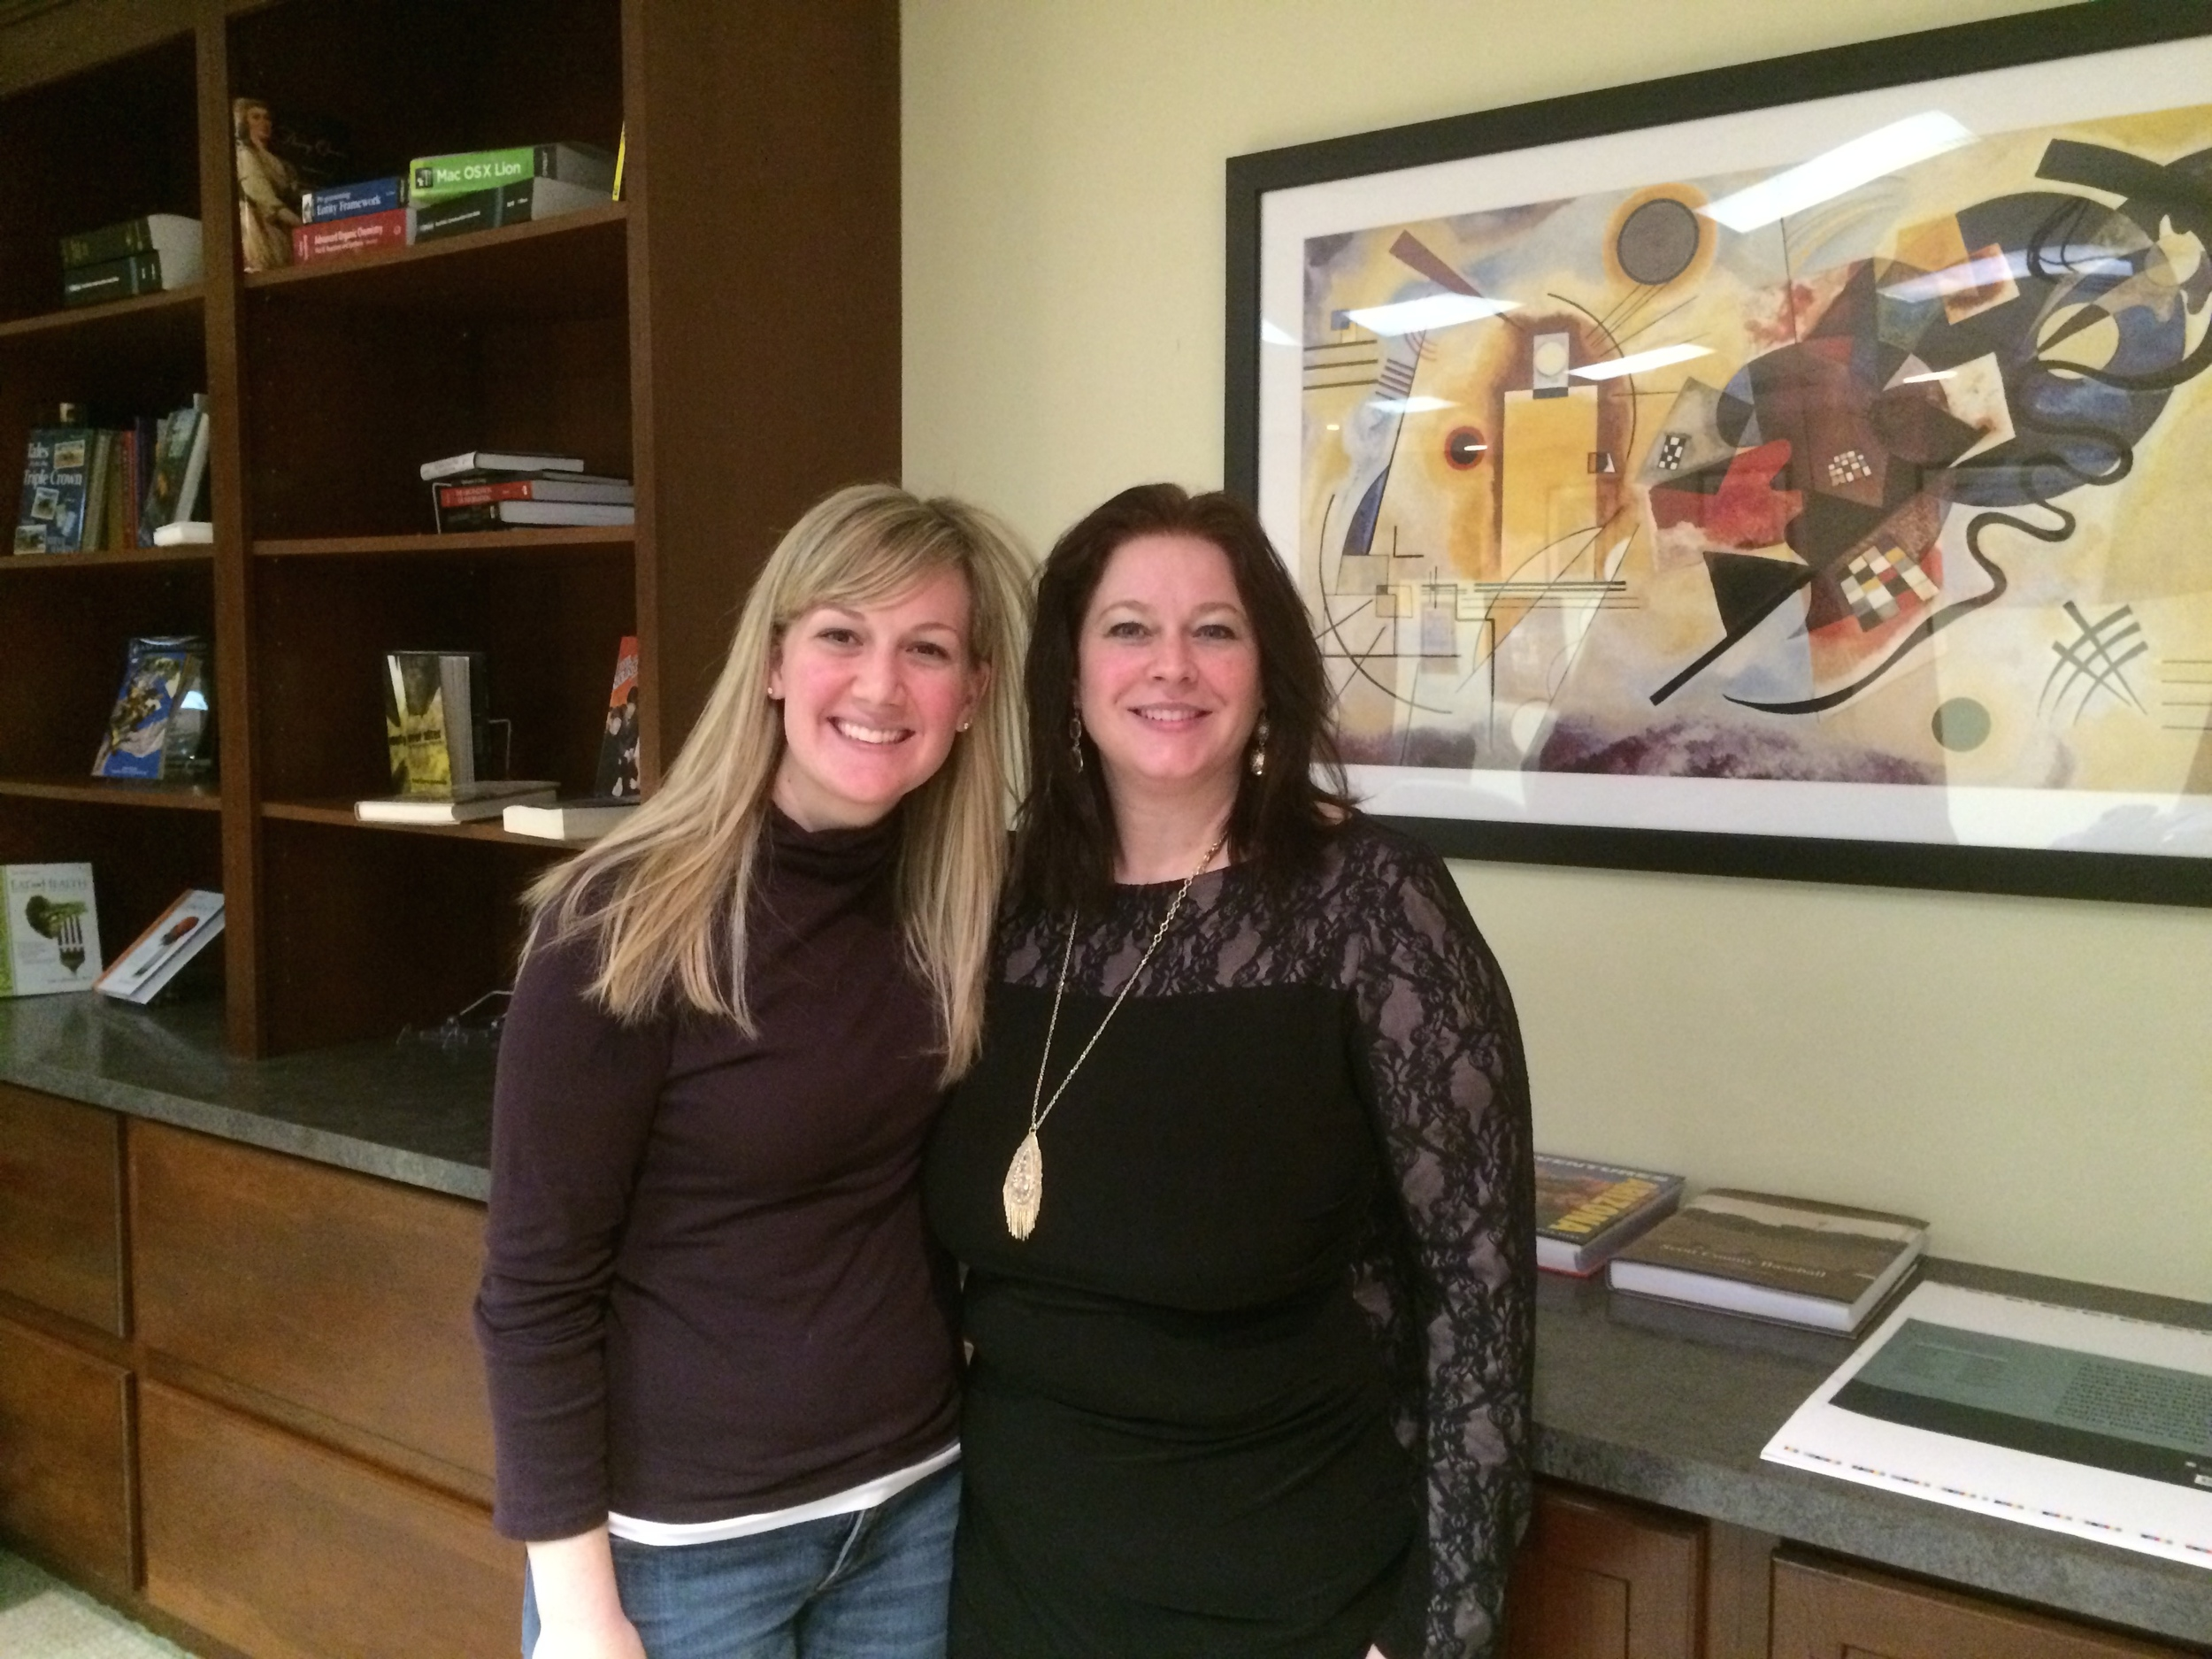 Lisa Cairn Santoro, Illustrator and Deborrah Popkey, Sales Representative at Sheridan Books, Inc.